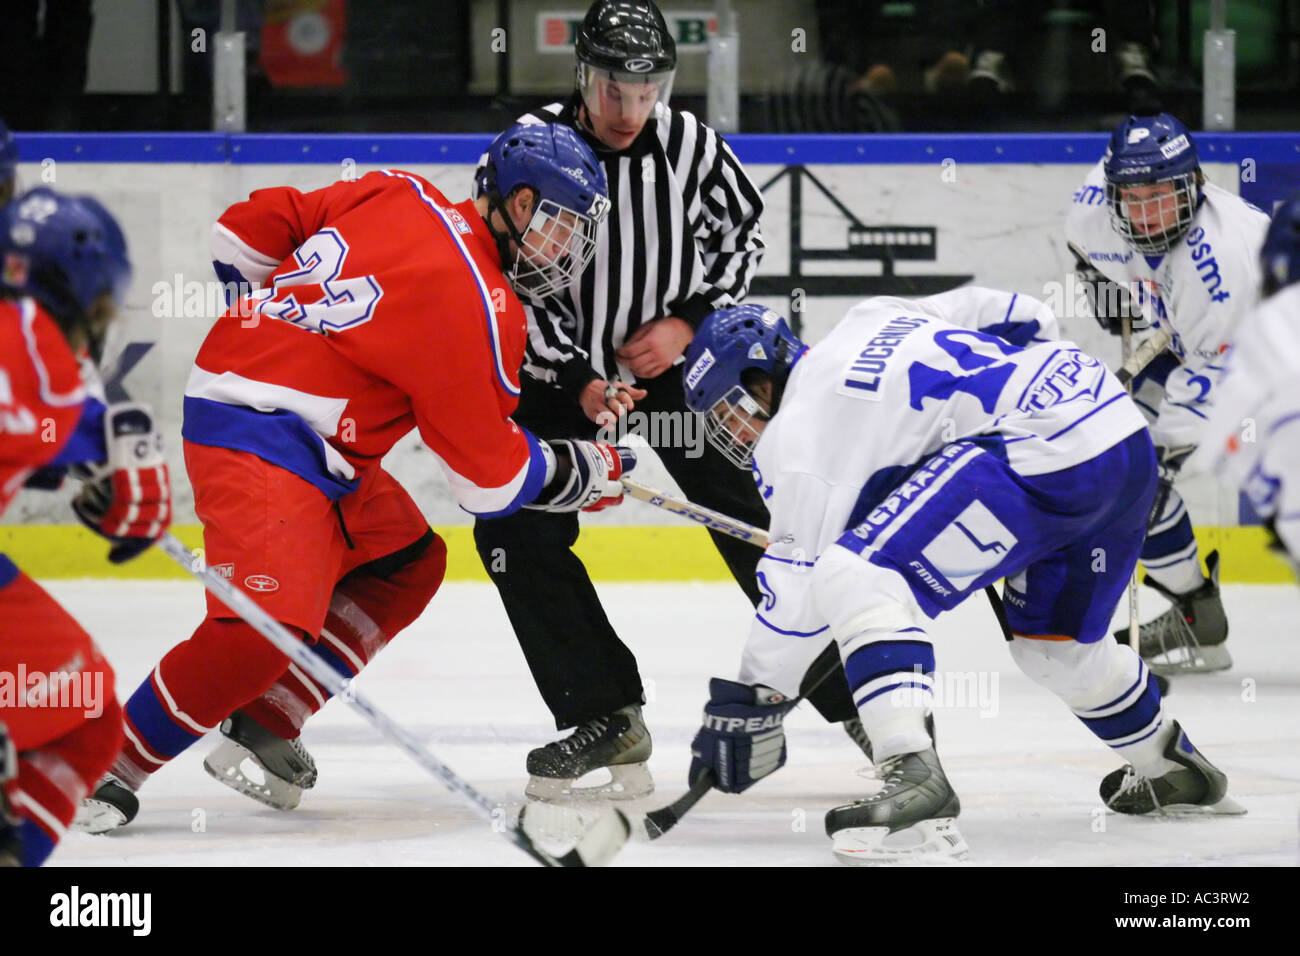 Face off between Finland and the Czech Republic in an international tournament for 17 year old teenagers. - Stock Image